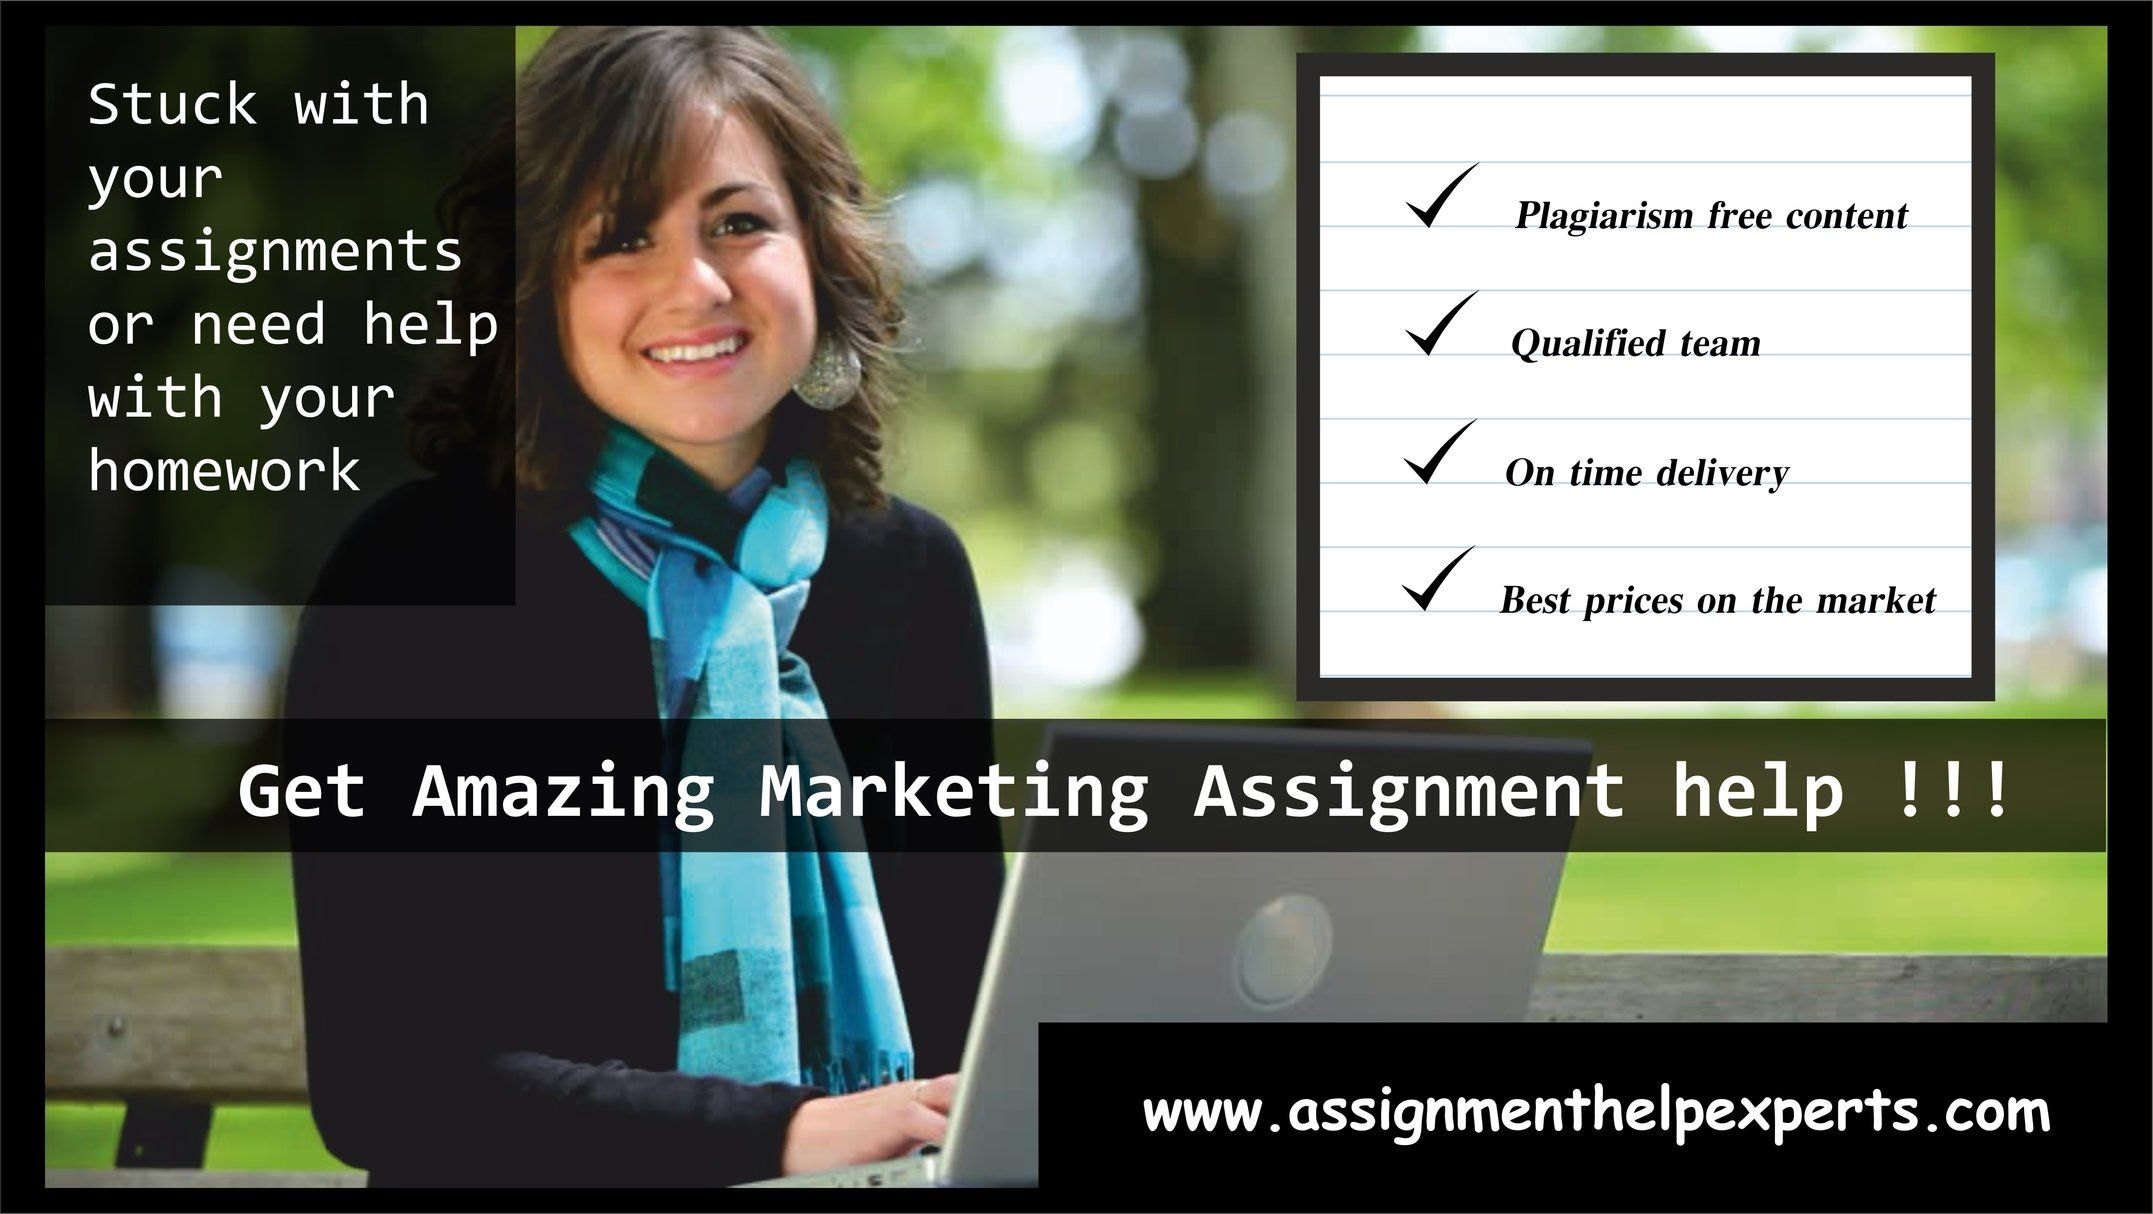 online market analysis assignment help by experienced marketing online market analysis assignment help by experienced marketing experts of assignmenthelpexperts com assignment help experts marketing